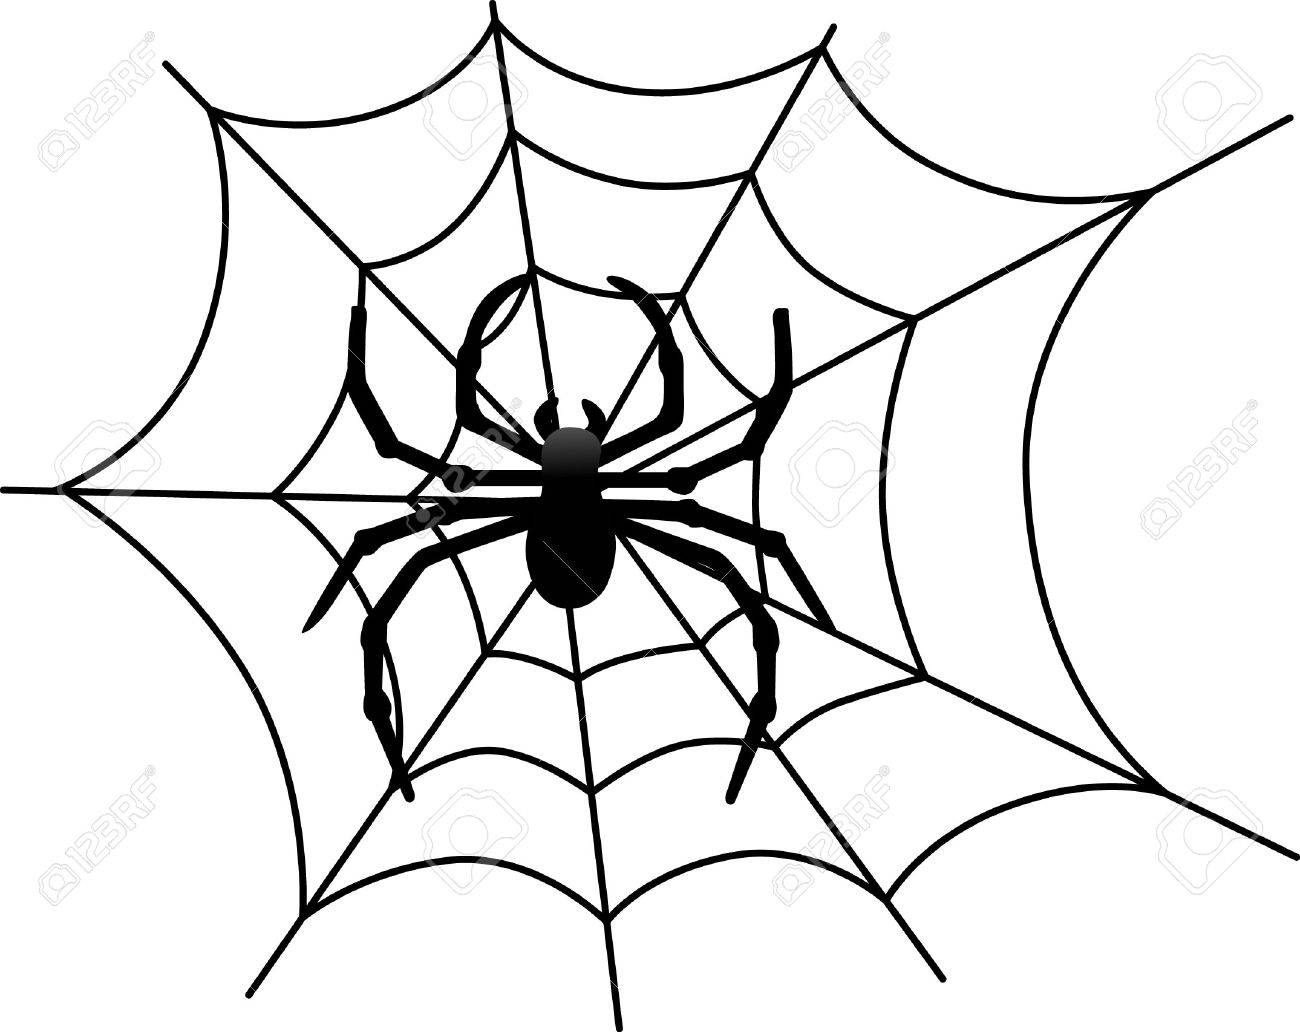 our big black spider weaves a scary web for halloween creations